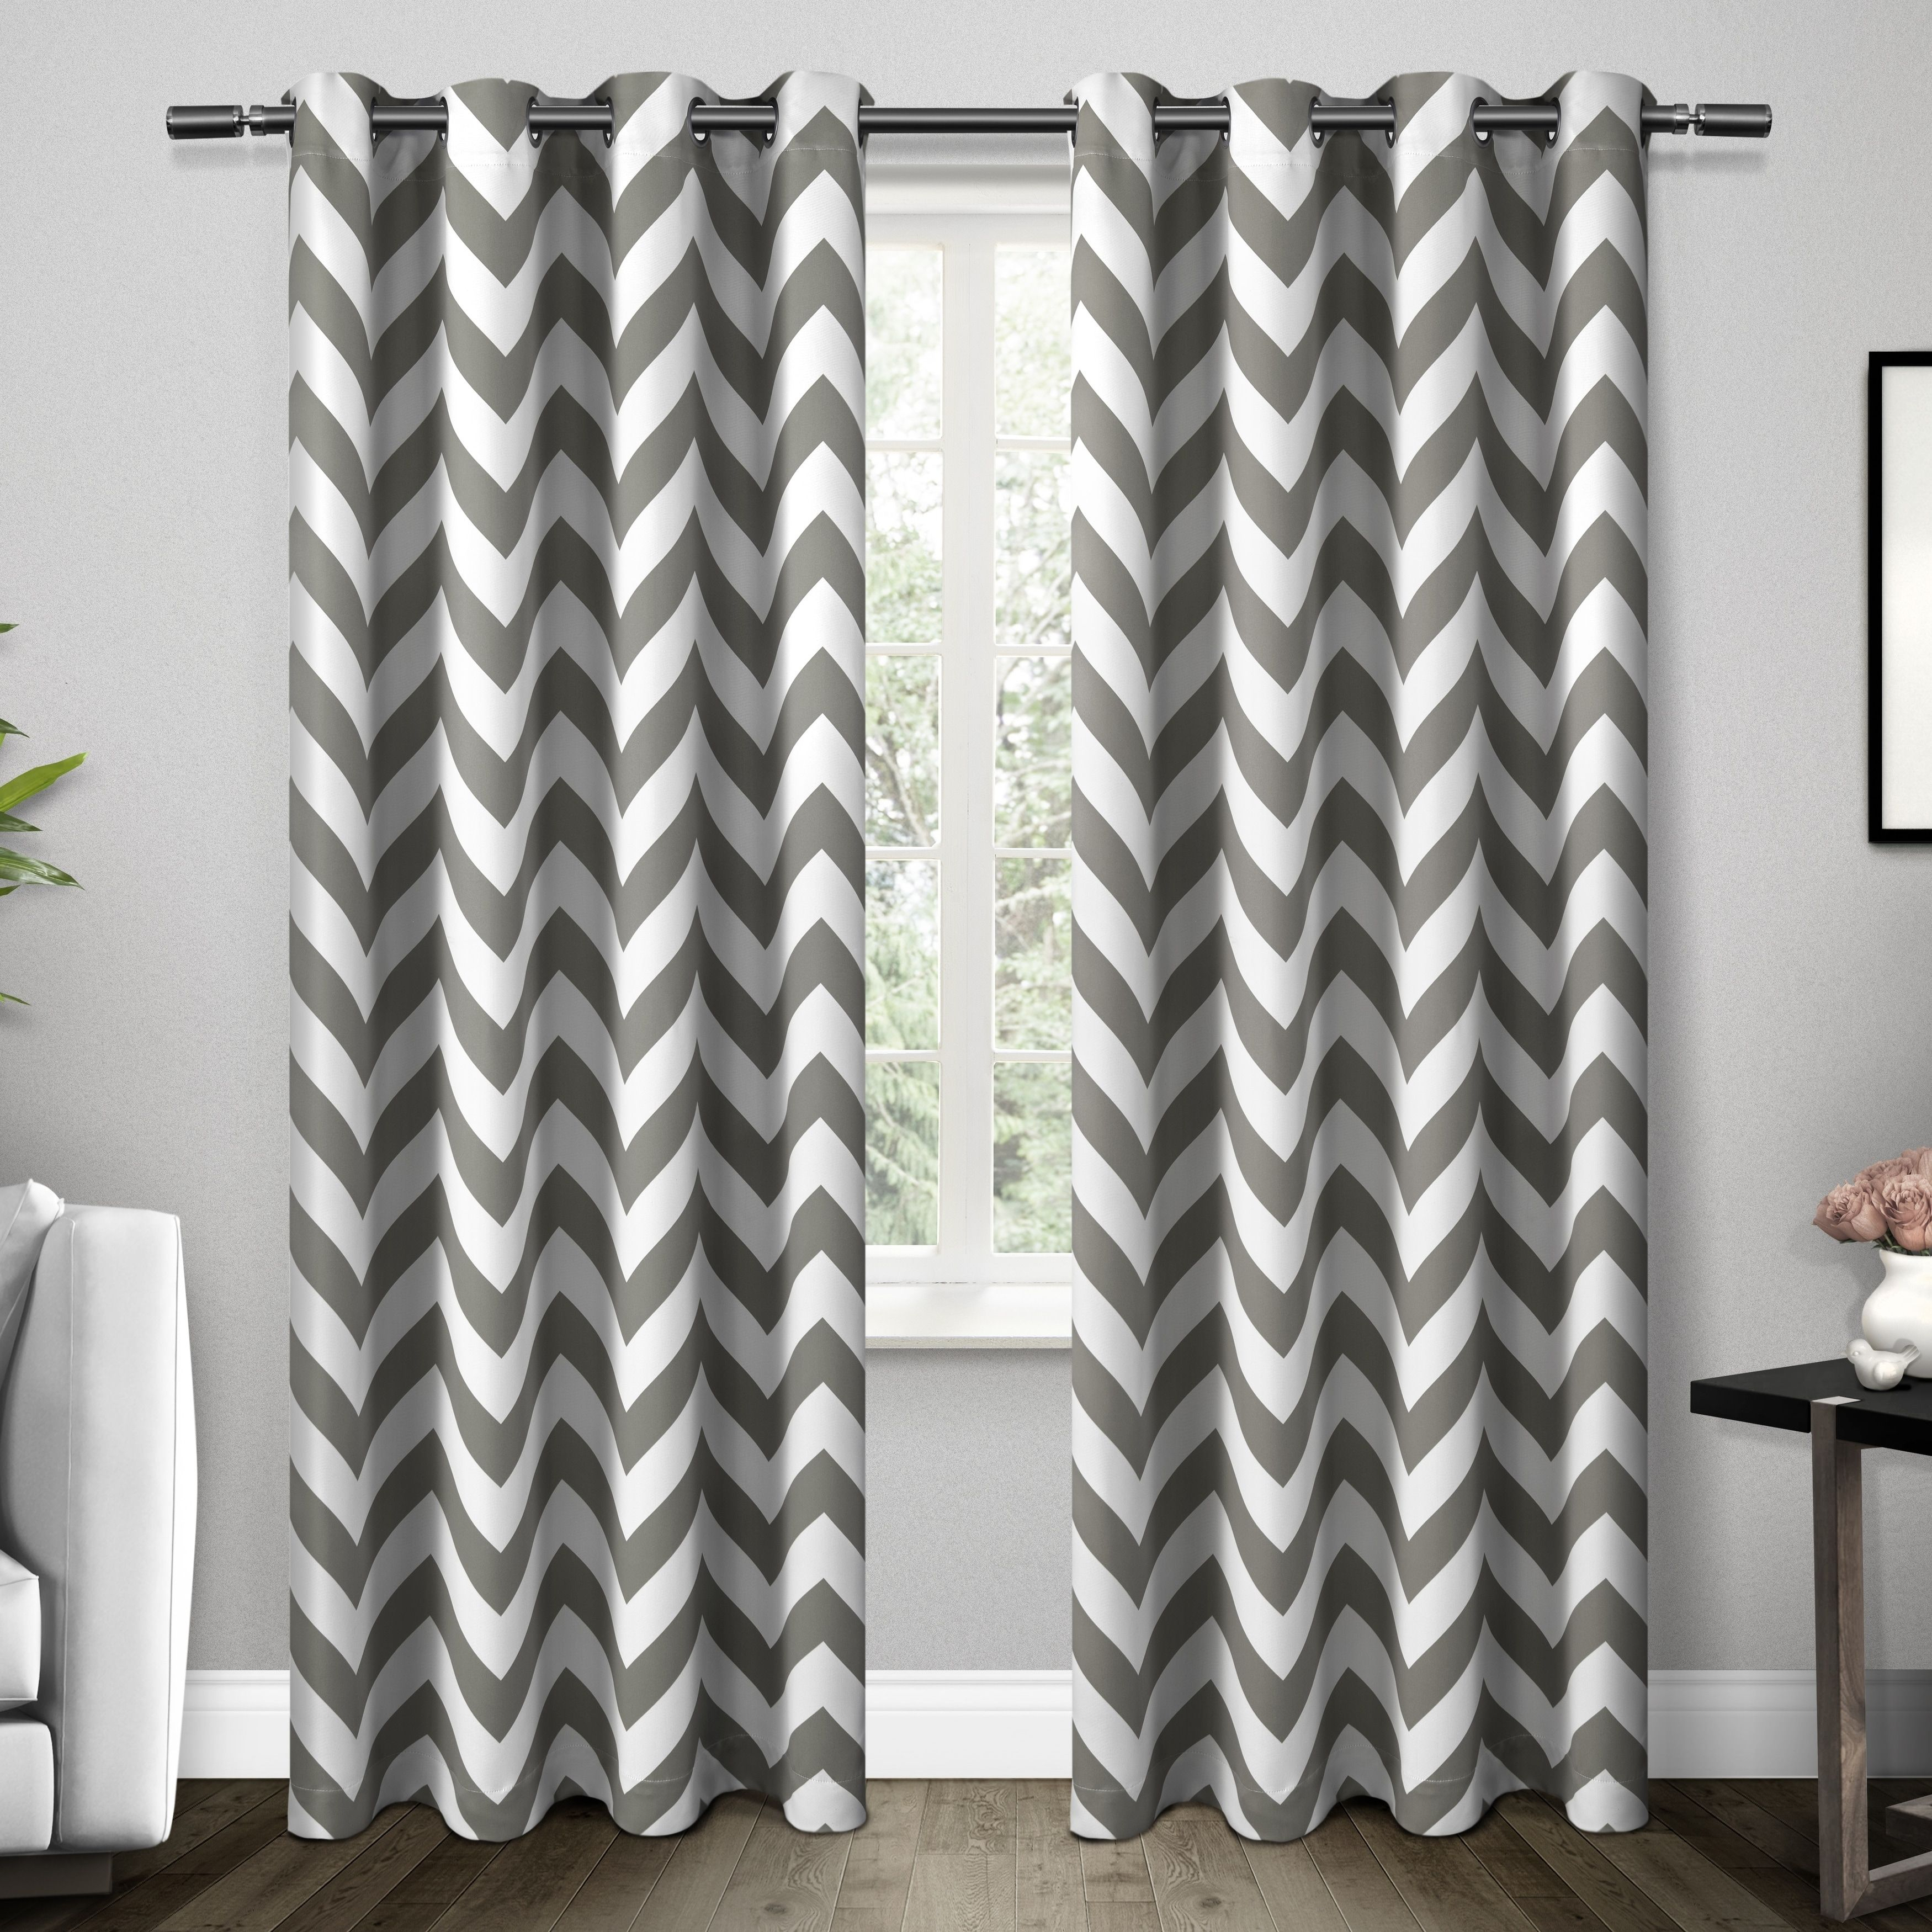 Ati Home Mars Thermal Woven Blackout Grommet Top Curtain Within Thermal Woven Blackout Grommet Top Curtain Panel Pairs (View 19 of 30)